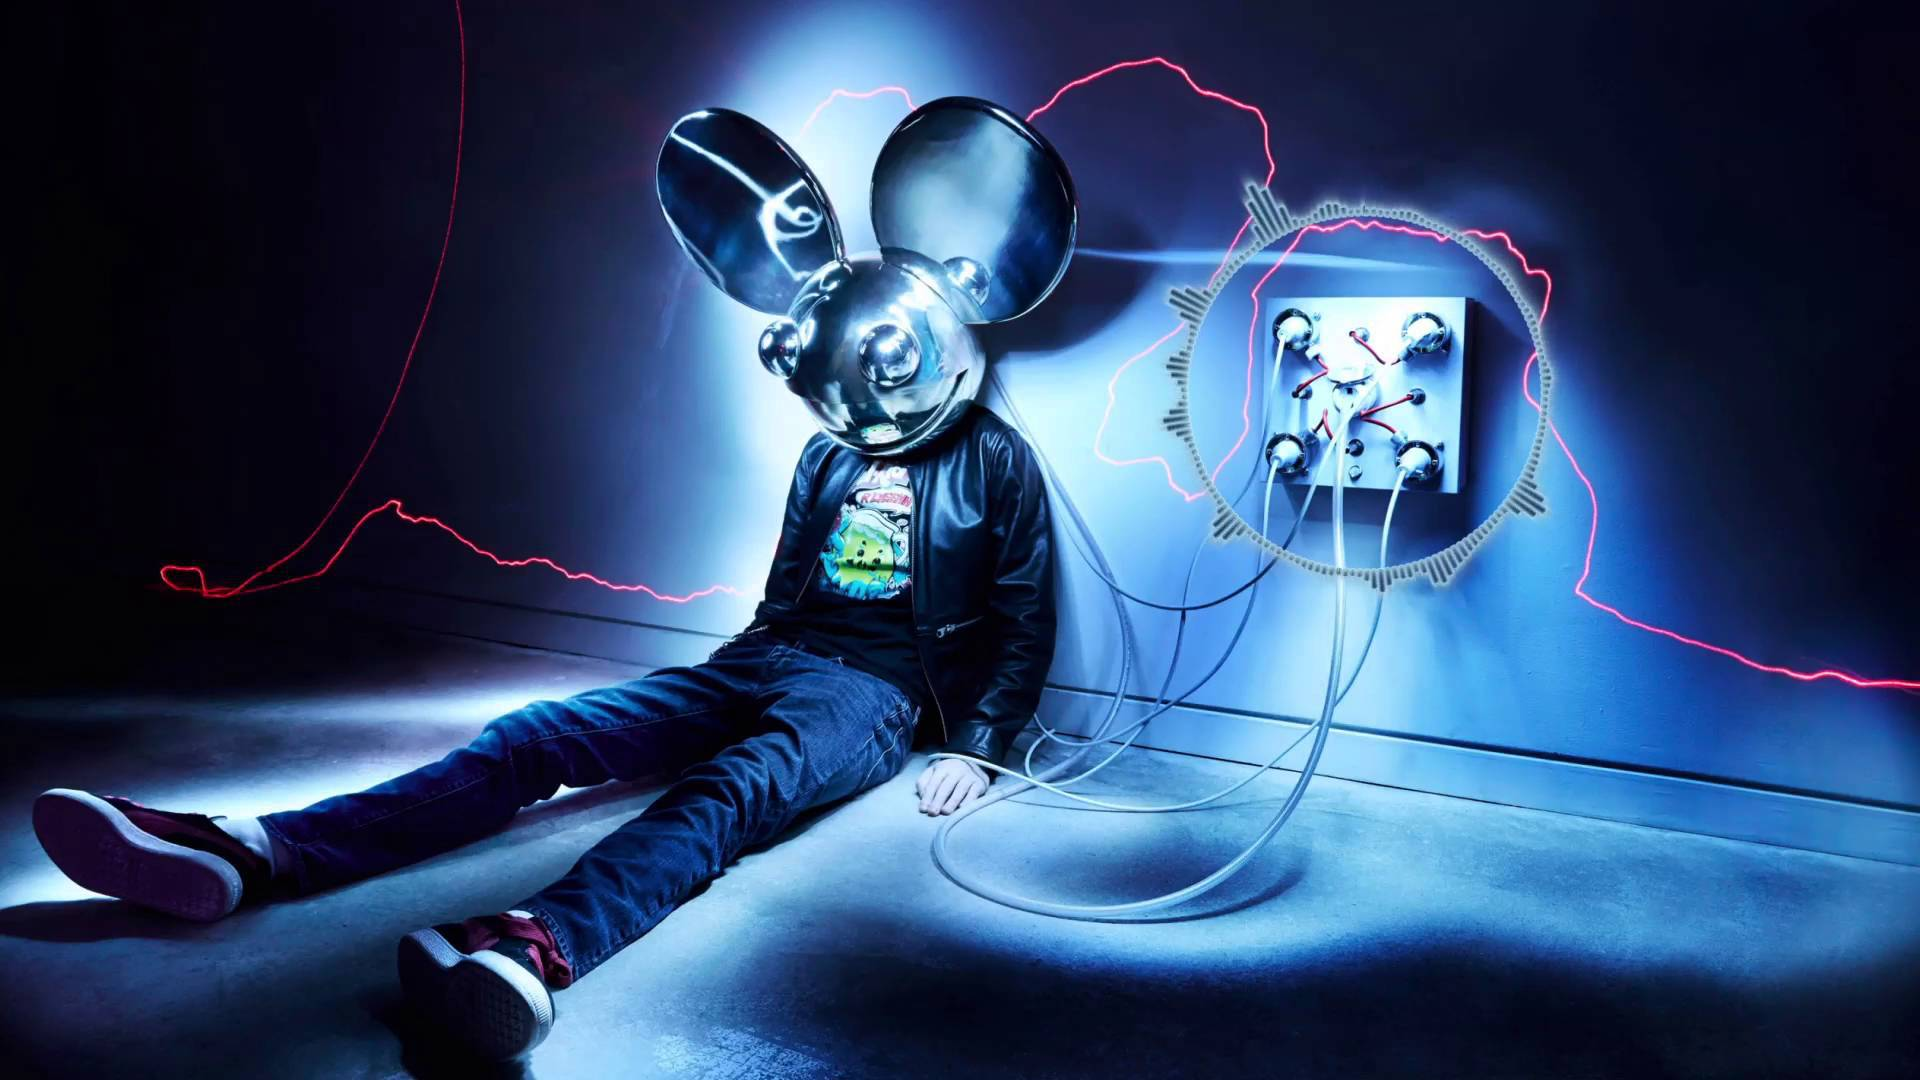 Deadmau5 For Desktop